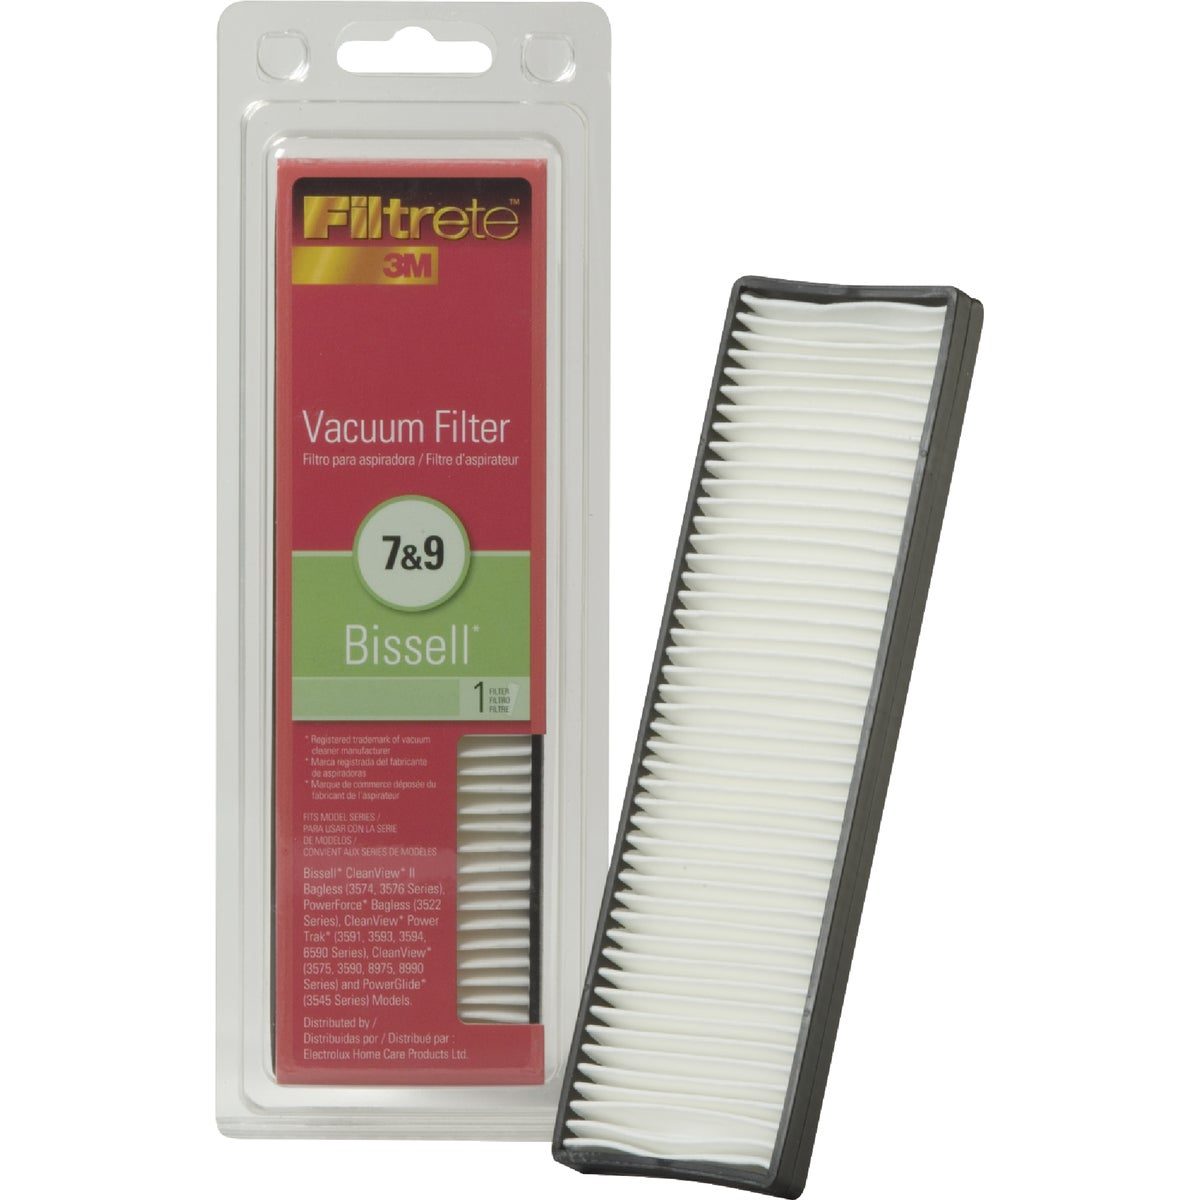 BISSELL VAC FILTER